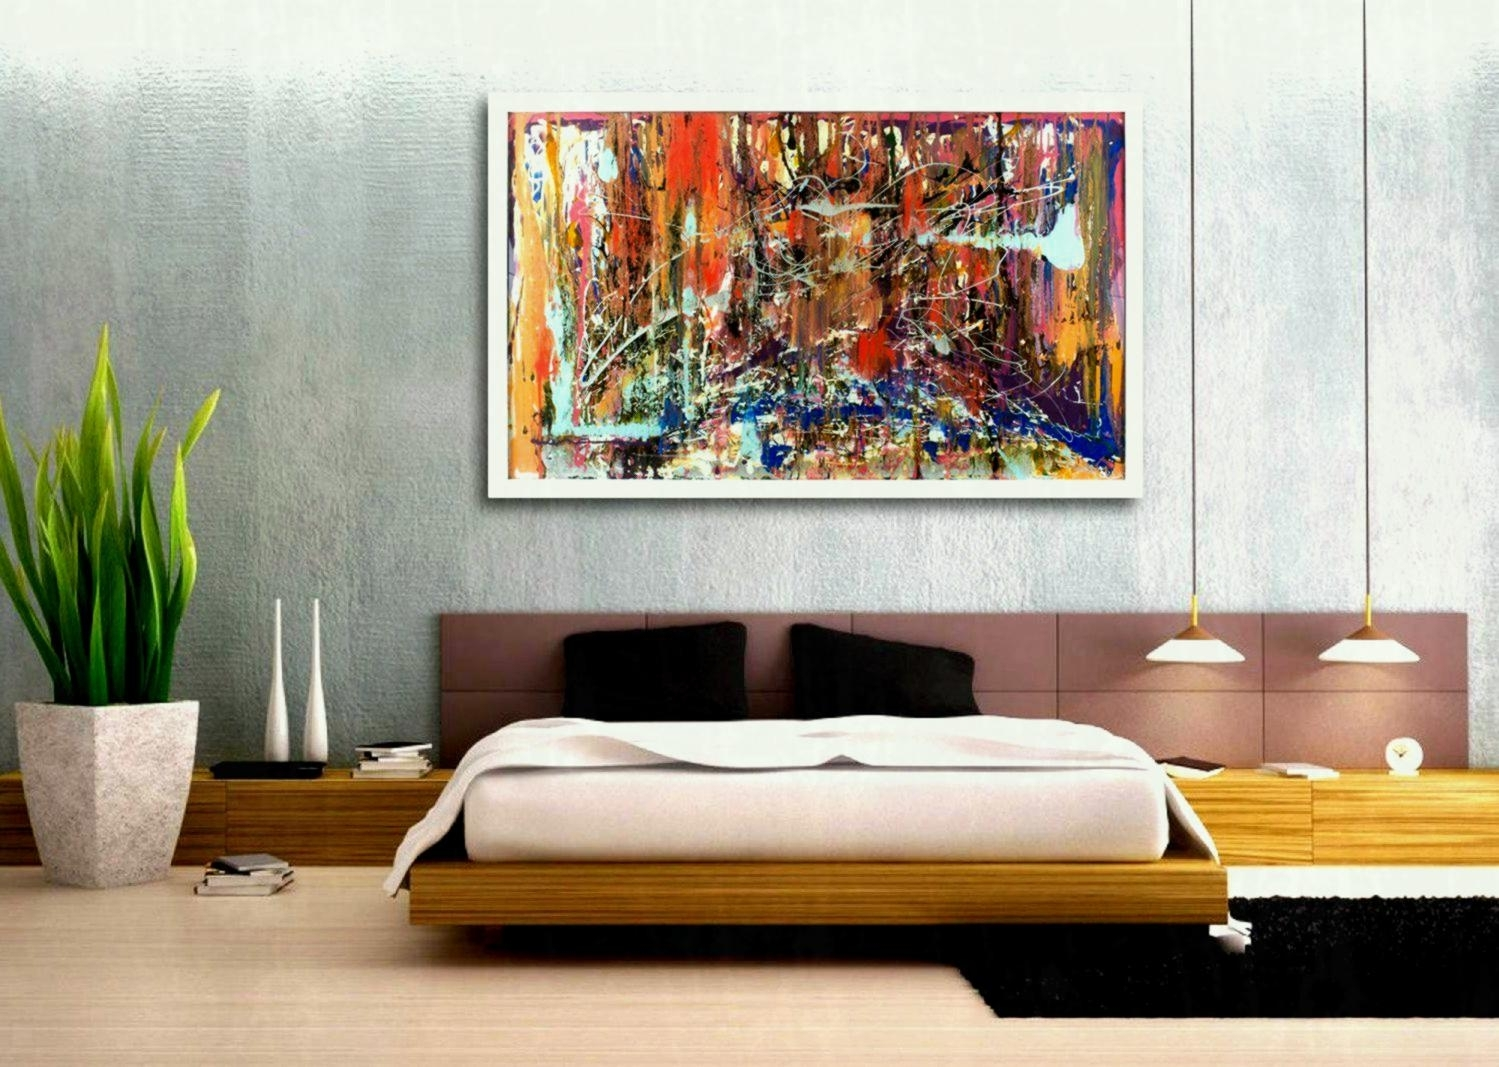 Large Canvas Wall Art Calm Soothing Huge Cheap Piece Living Room for Cheap Large Canvas Wall Art (Image 17 of 20)